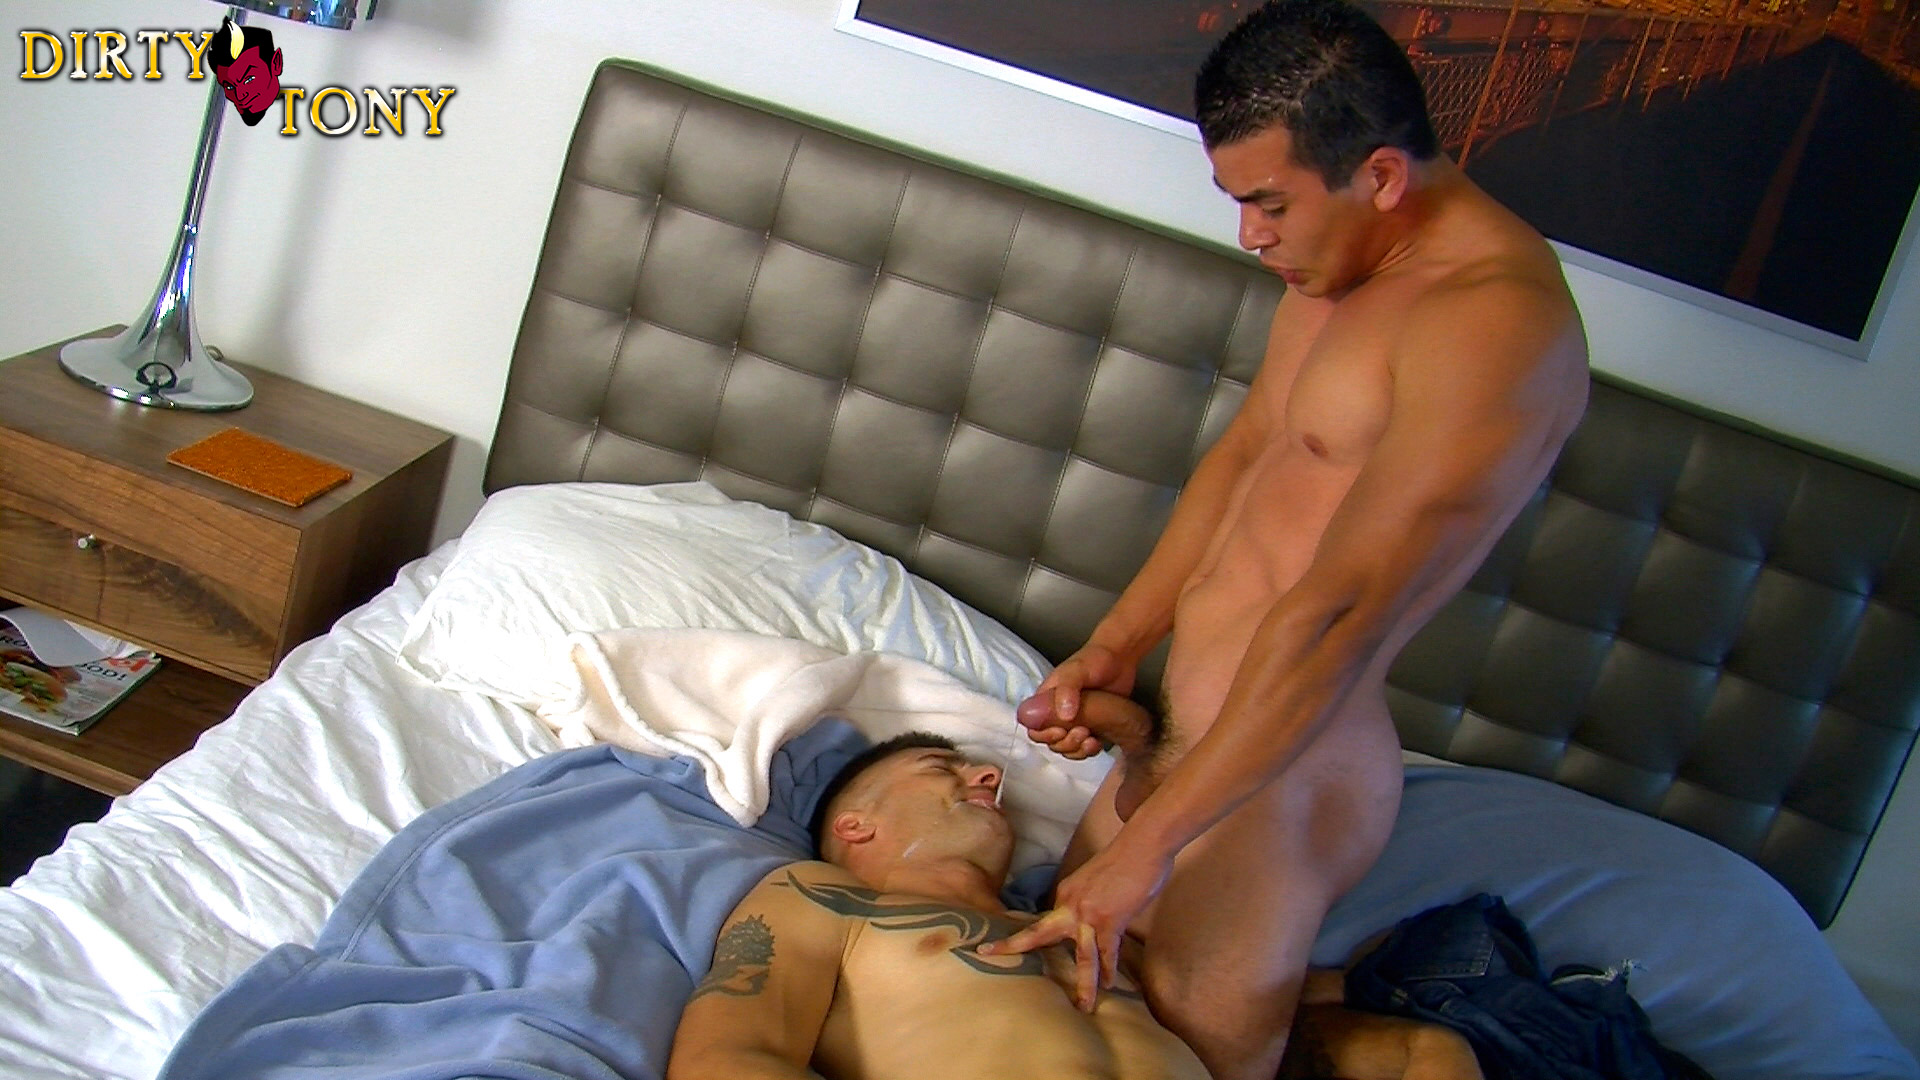 Dirty-Tony-FRANCISCO-FUCKS-JOE-RIVERS-thick-cock-13 Massive Amateur Uncut Latino Cock Fucks A Hot White Bottom